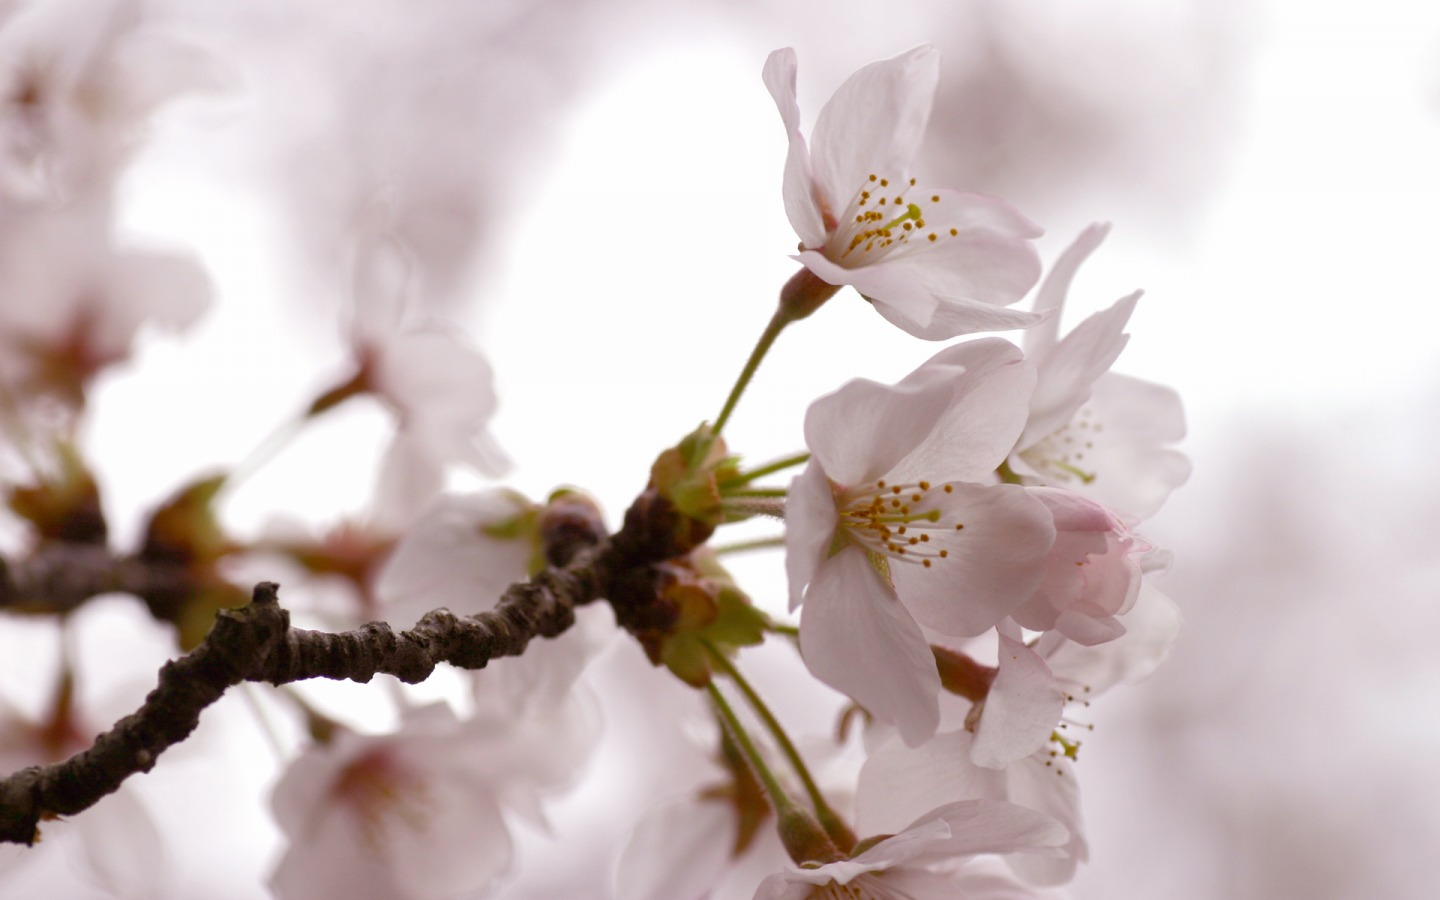 Cherry Flowers Wallpaper Spring Nature Wallpapers in jpg format